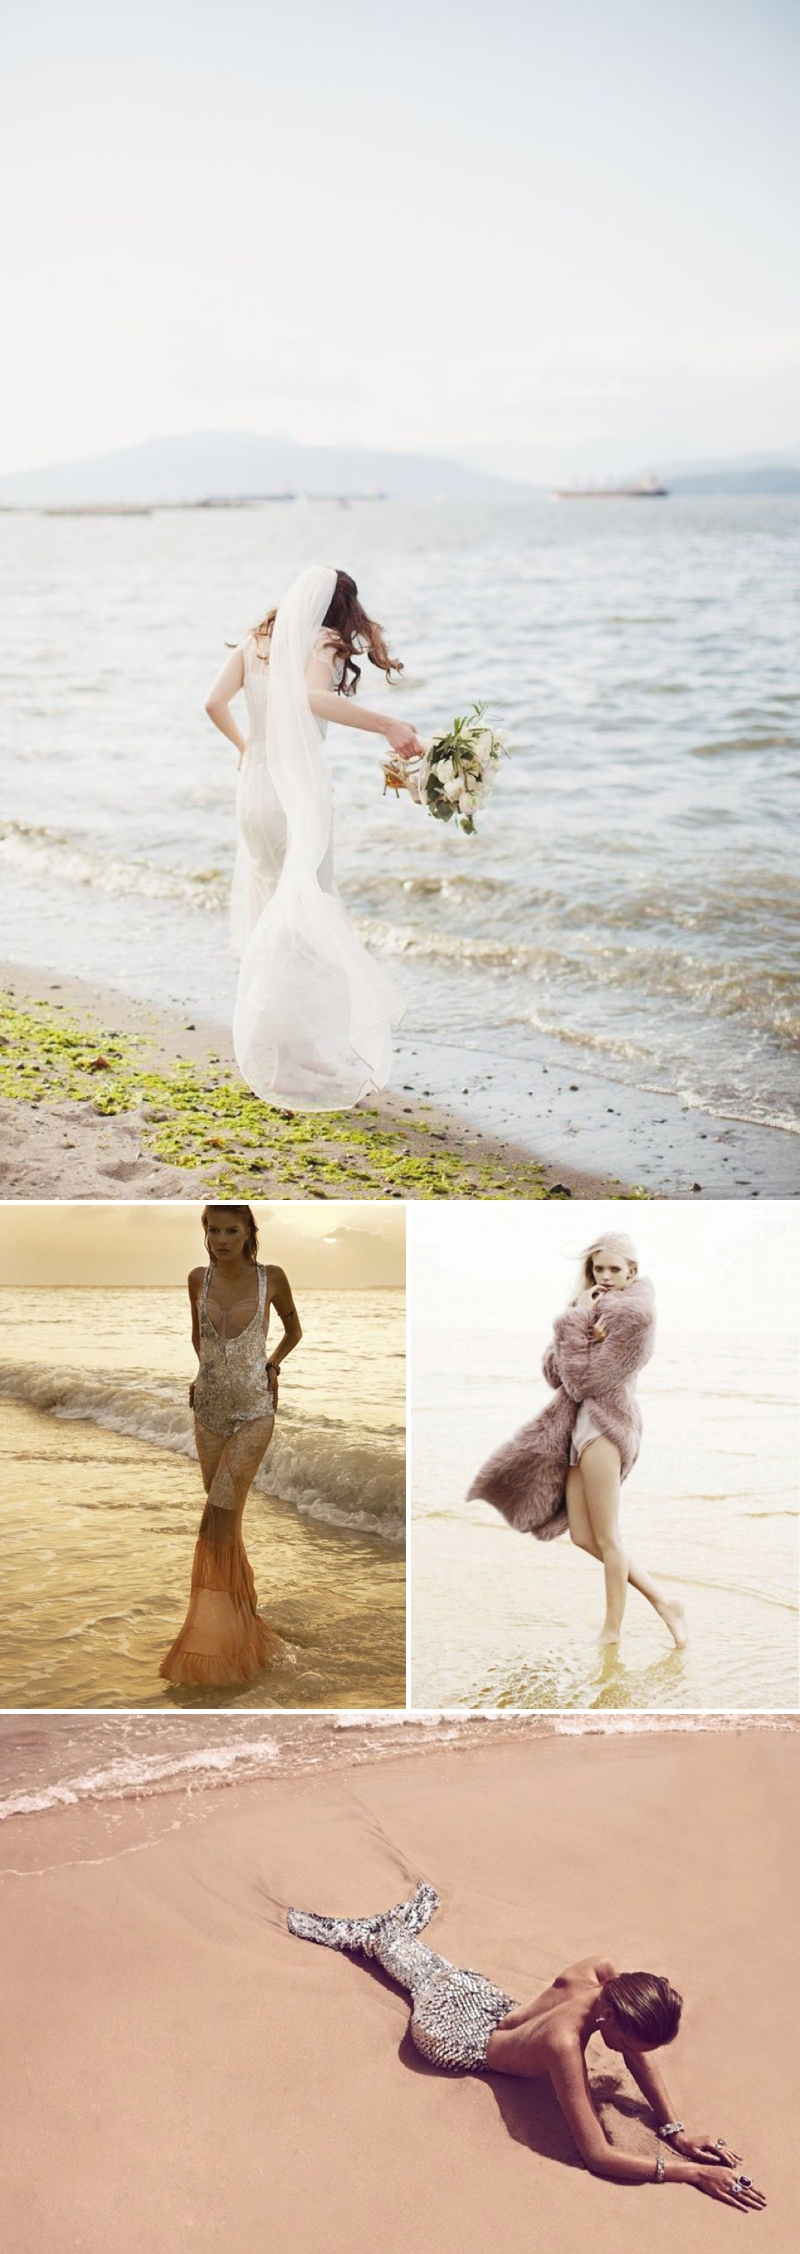 Mermaid inspiration for your wedding day_0224